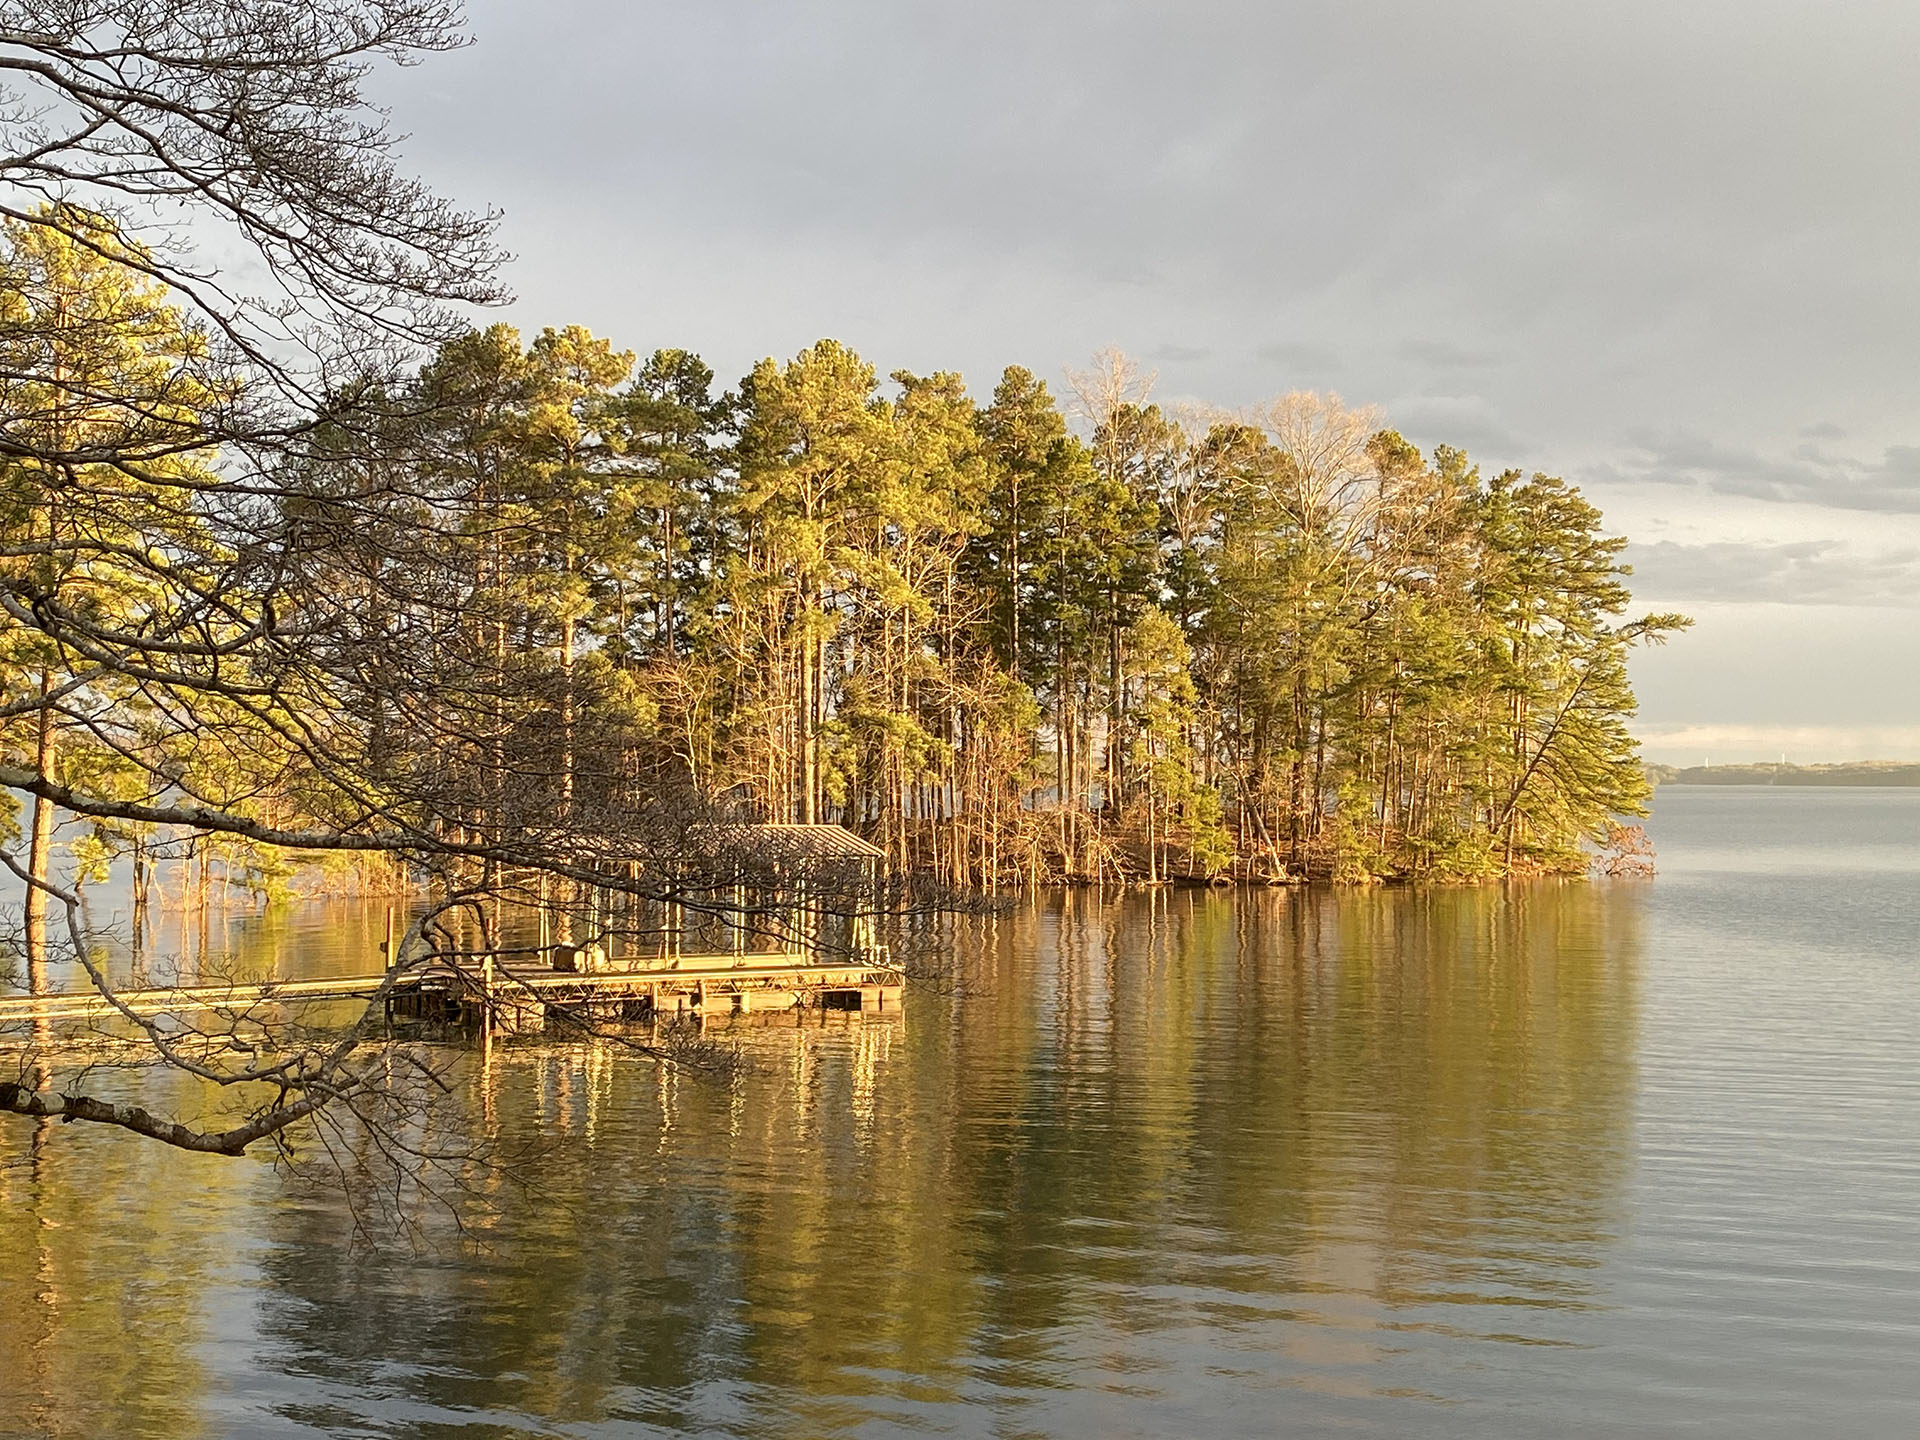 Dock and tree line at Lake Lanier